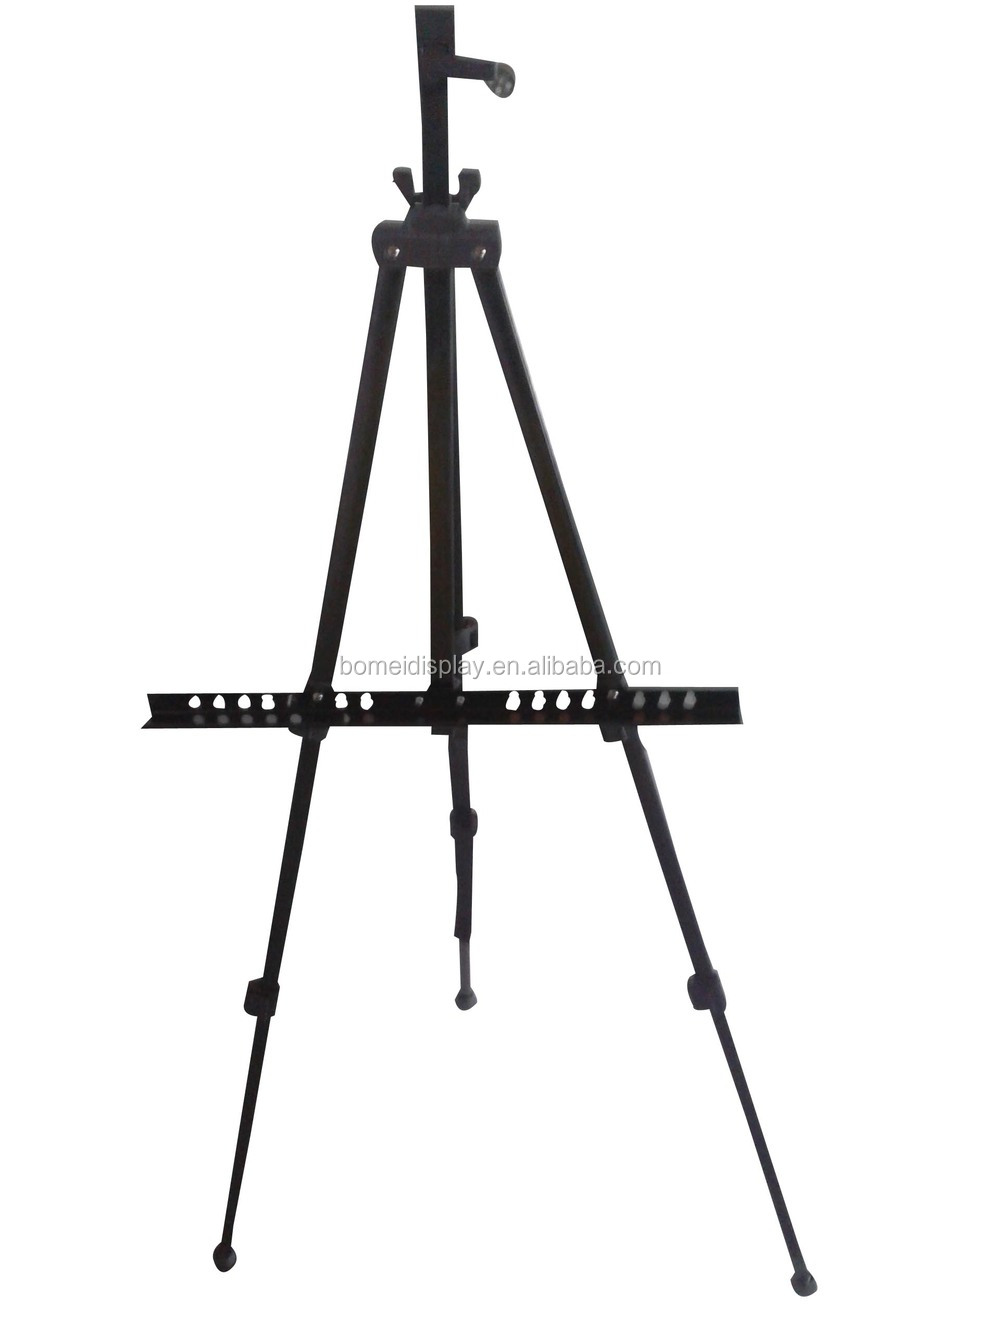 telescopic field studio painting easel tripod display stand x tripod